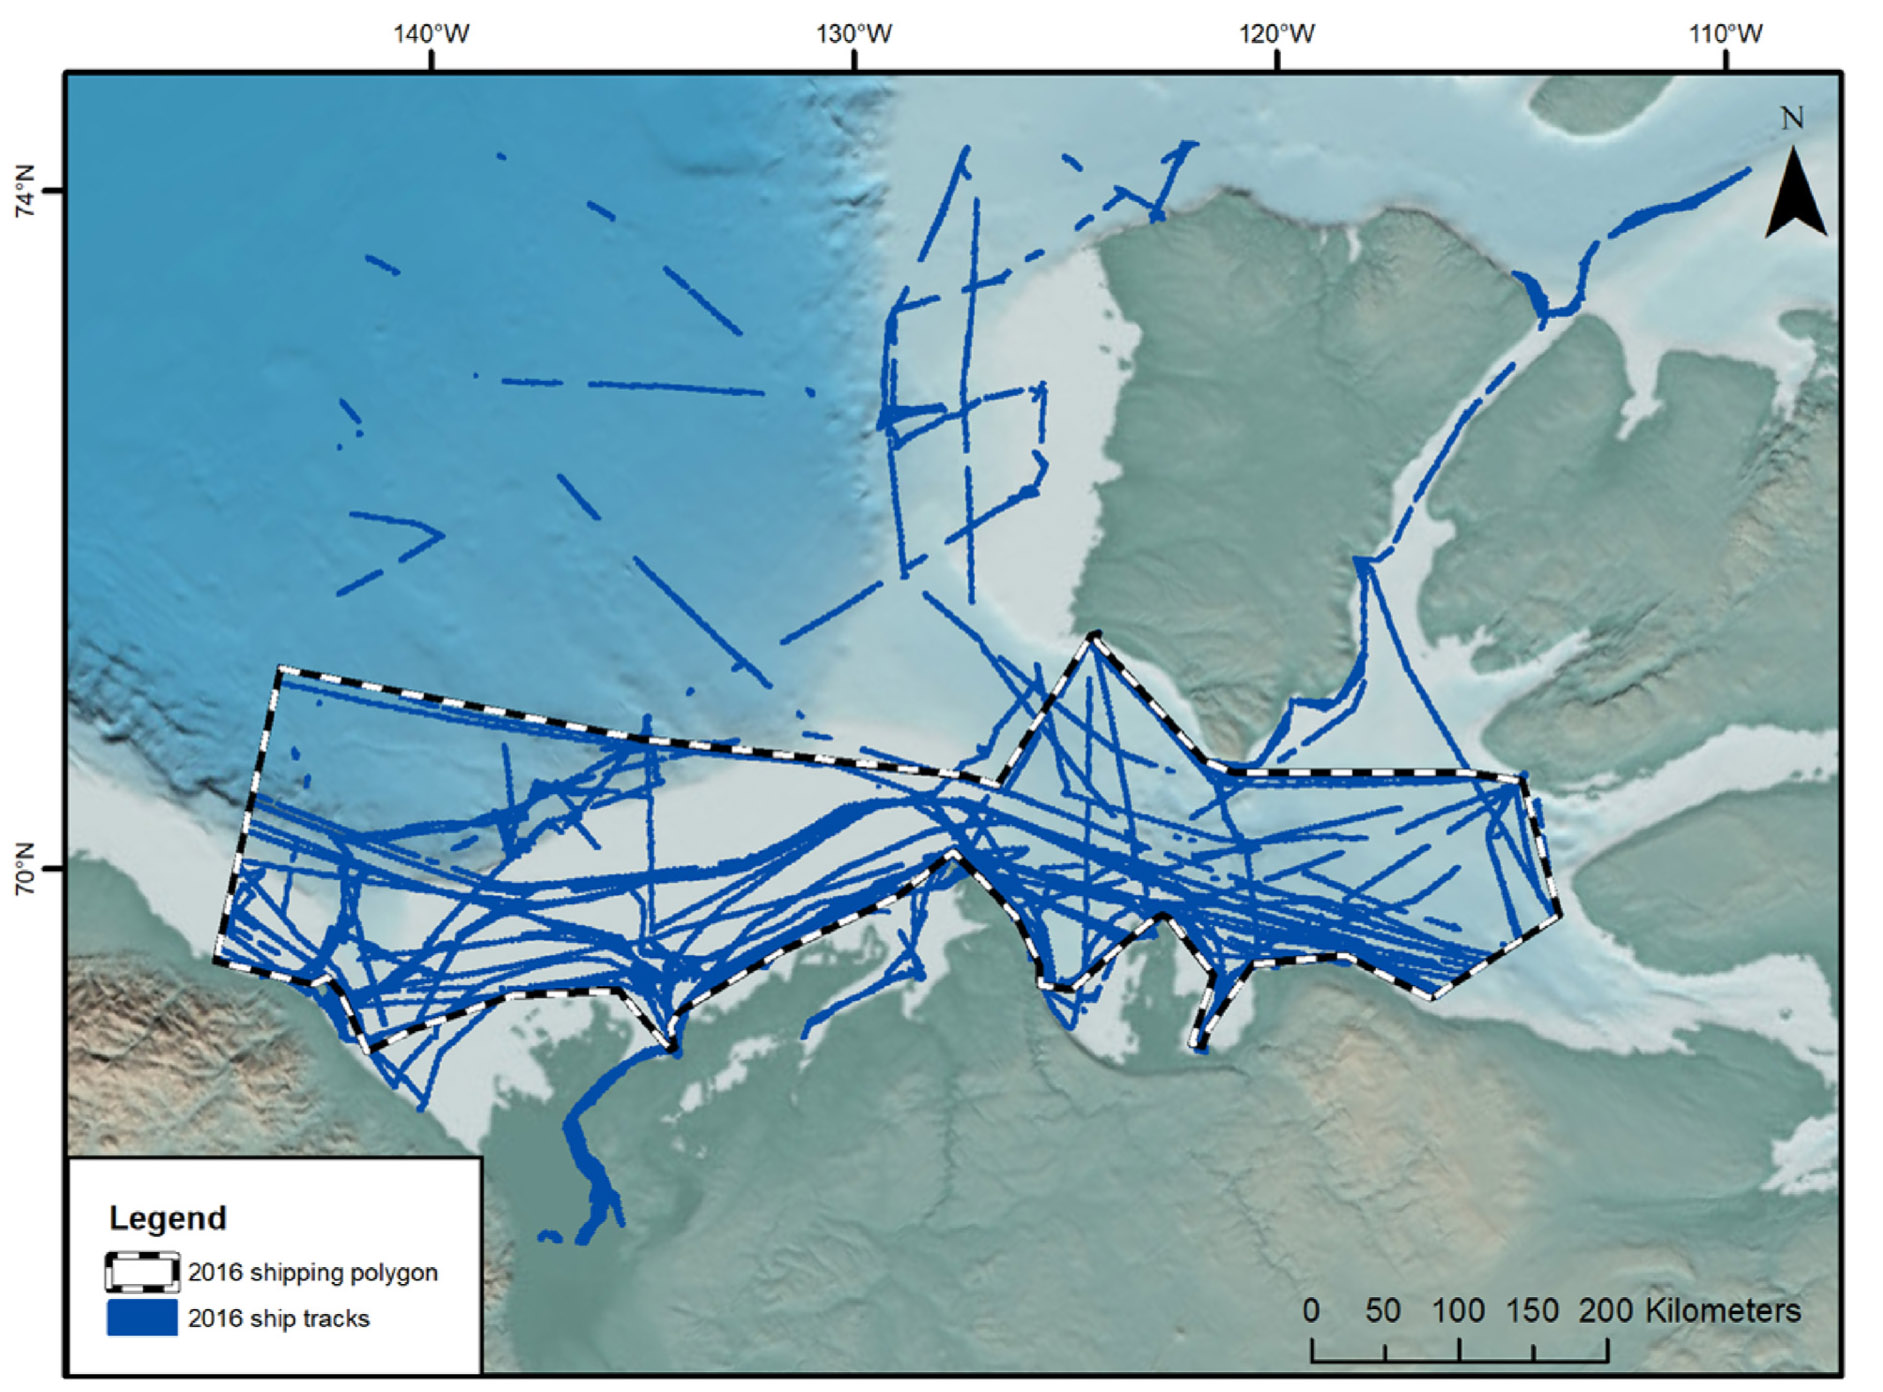 A map showing shipping traffic through critical beluga and bowhead whale habitat in the Amundsen Gulf in 2016